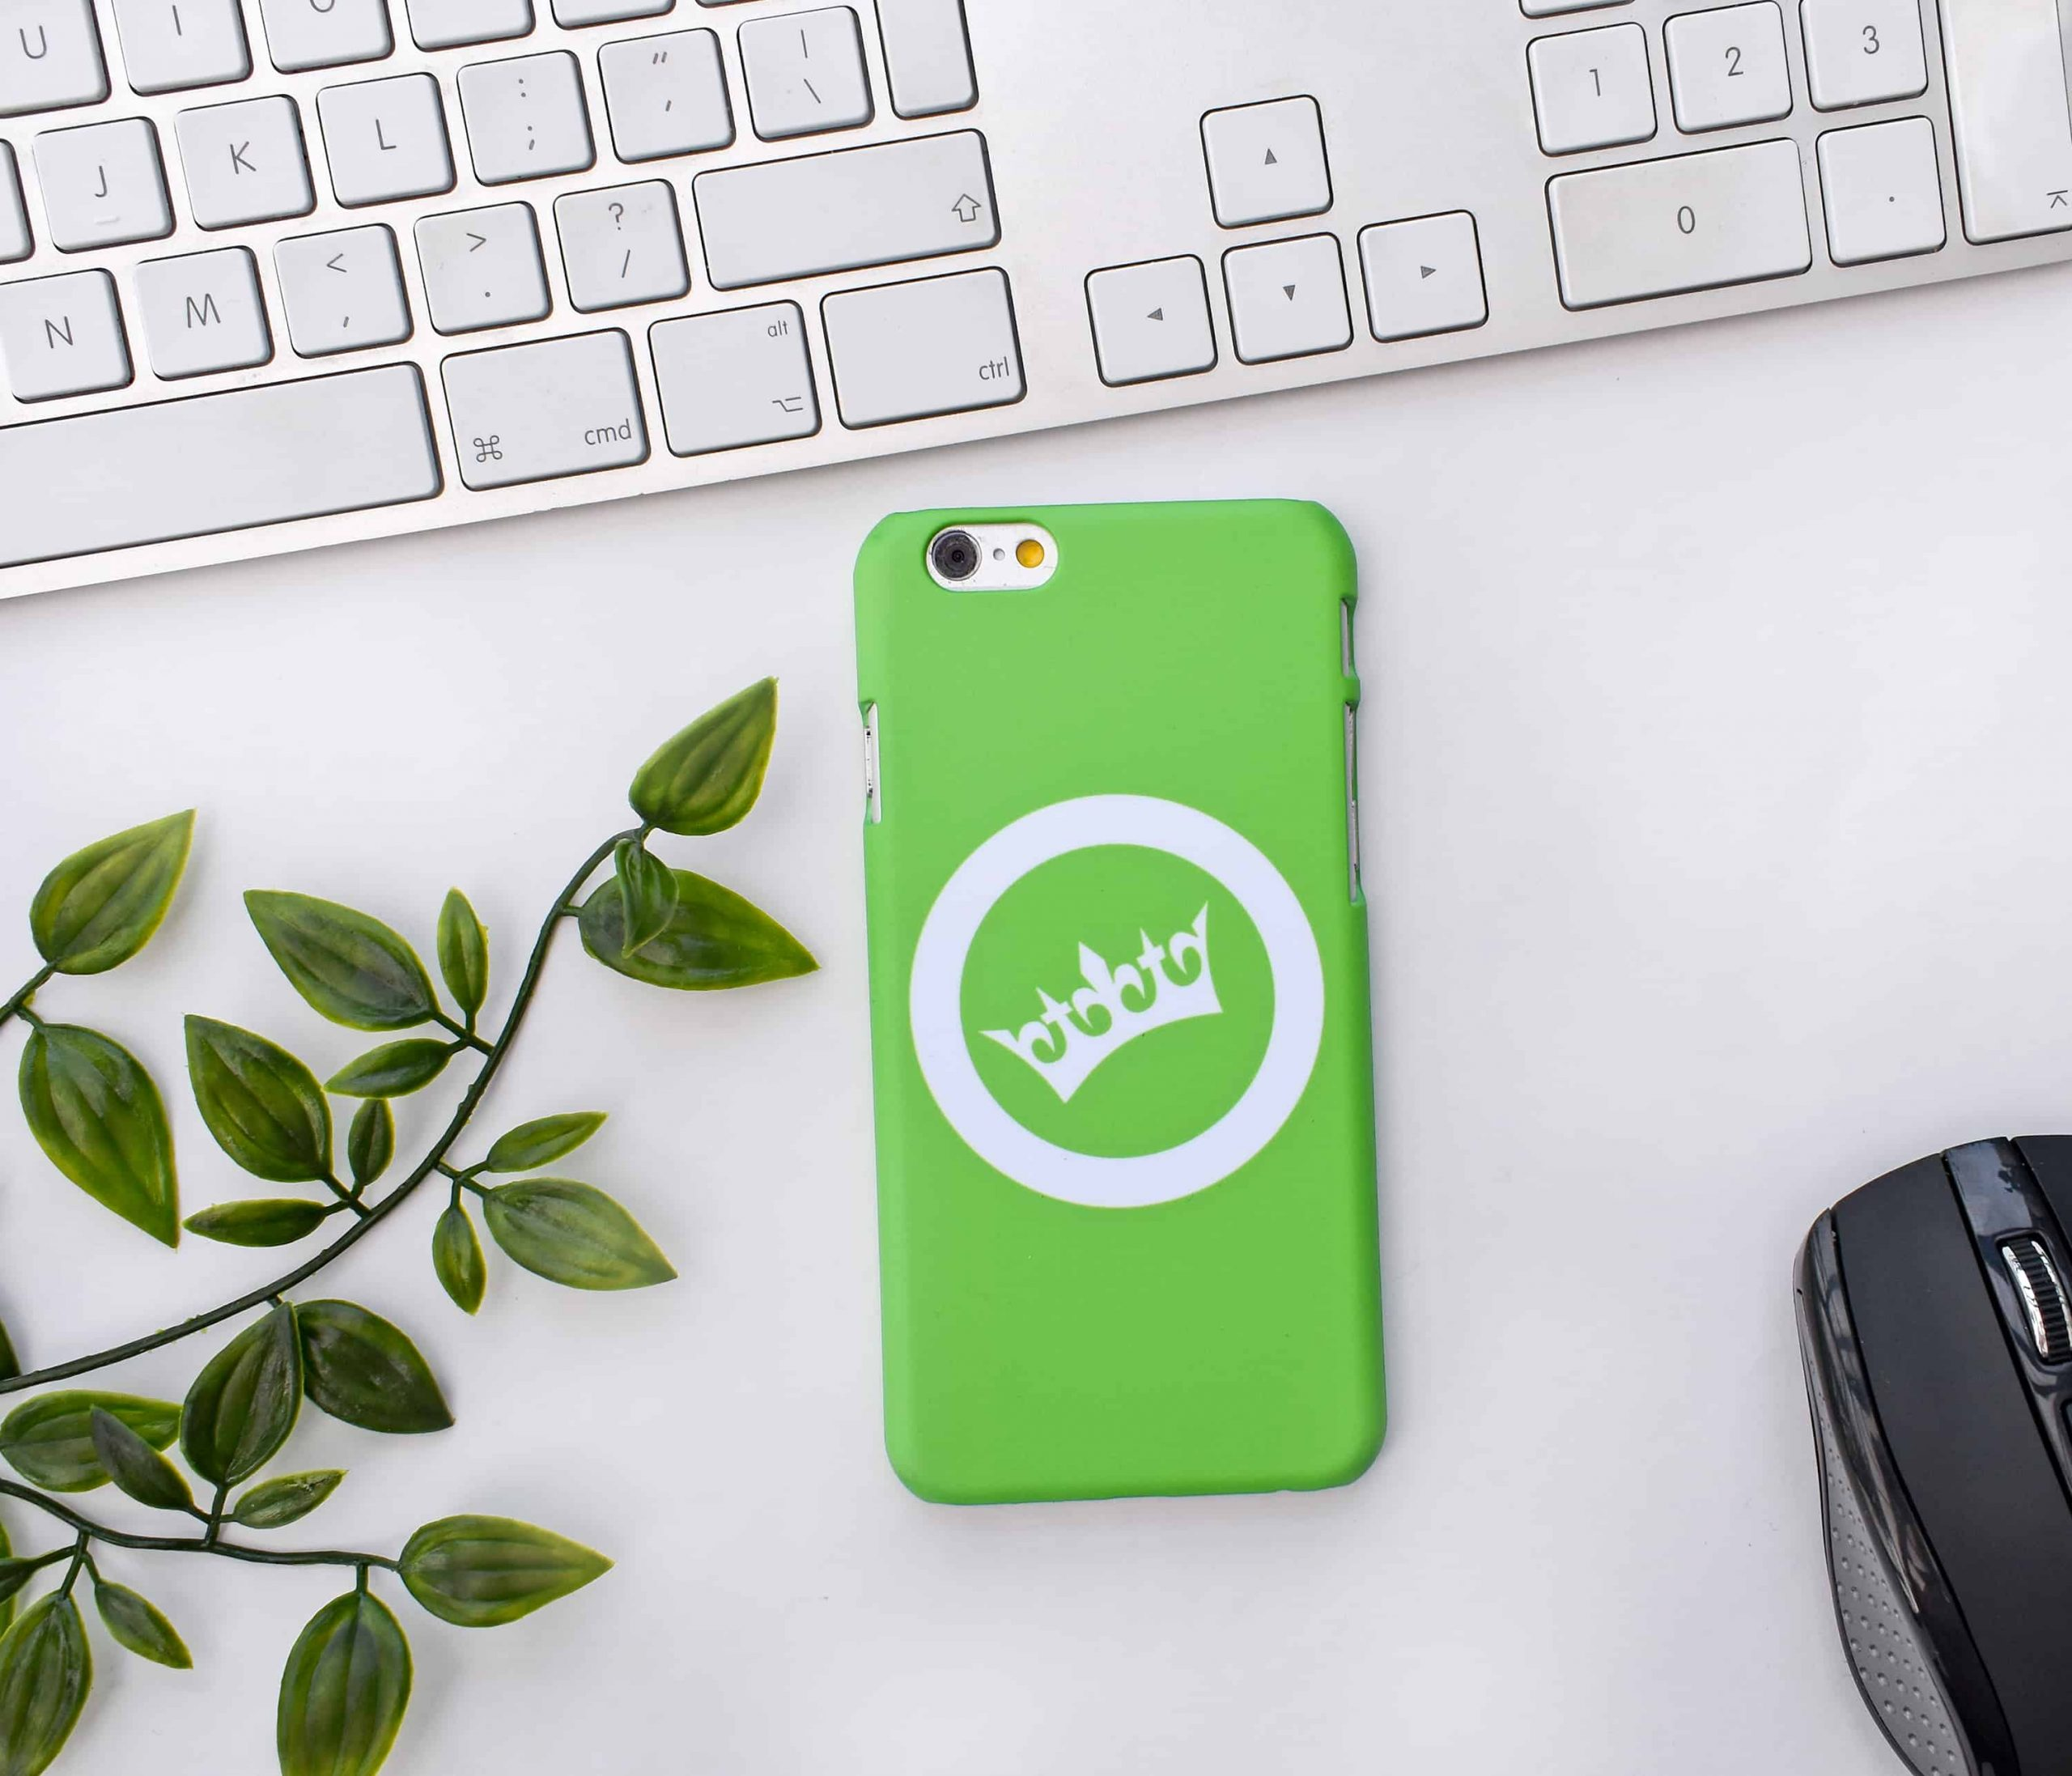 Fully printed case with company logo